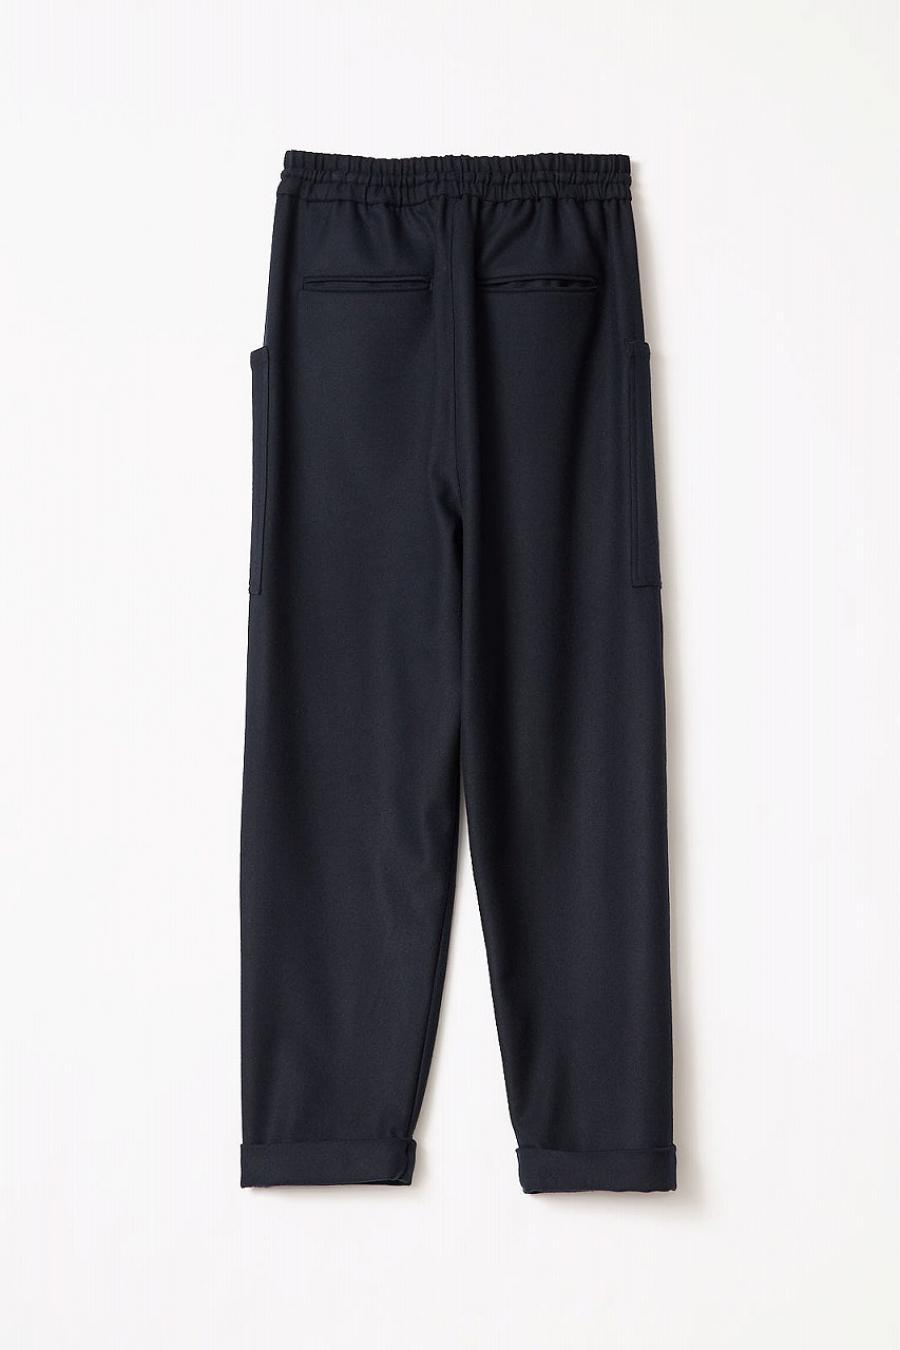 West String Cropped Pants